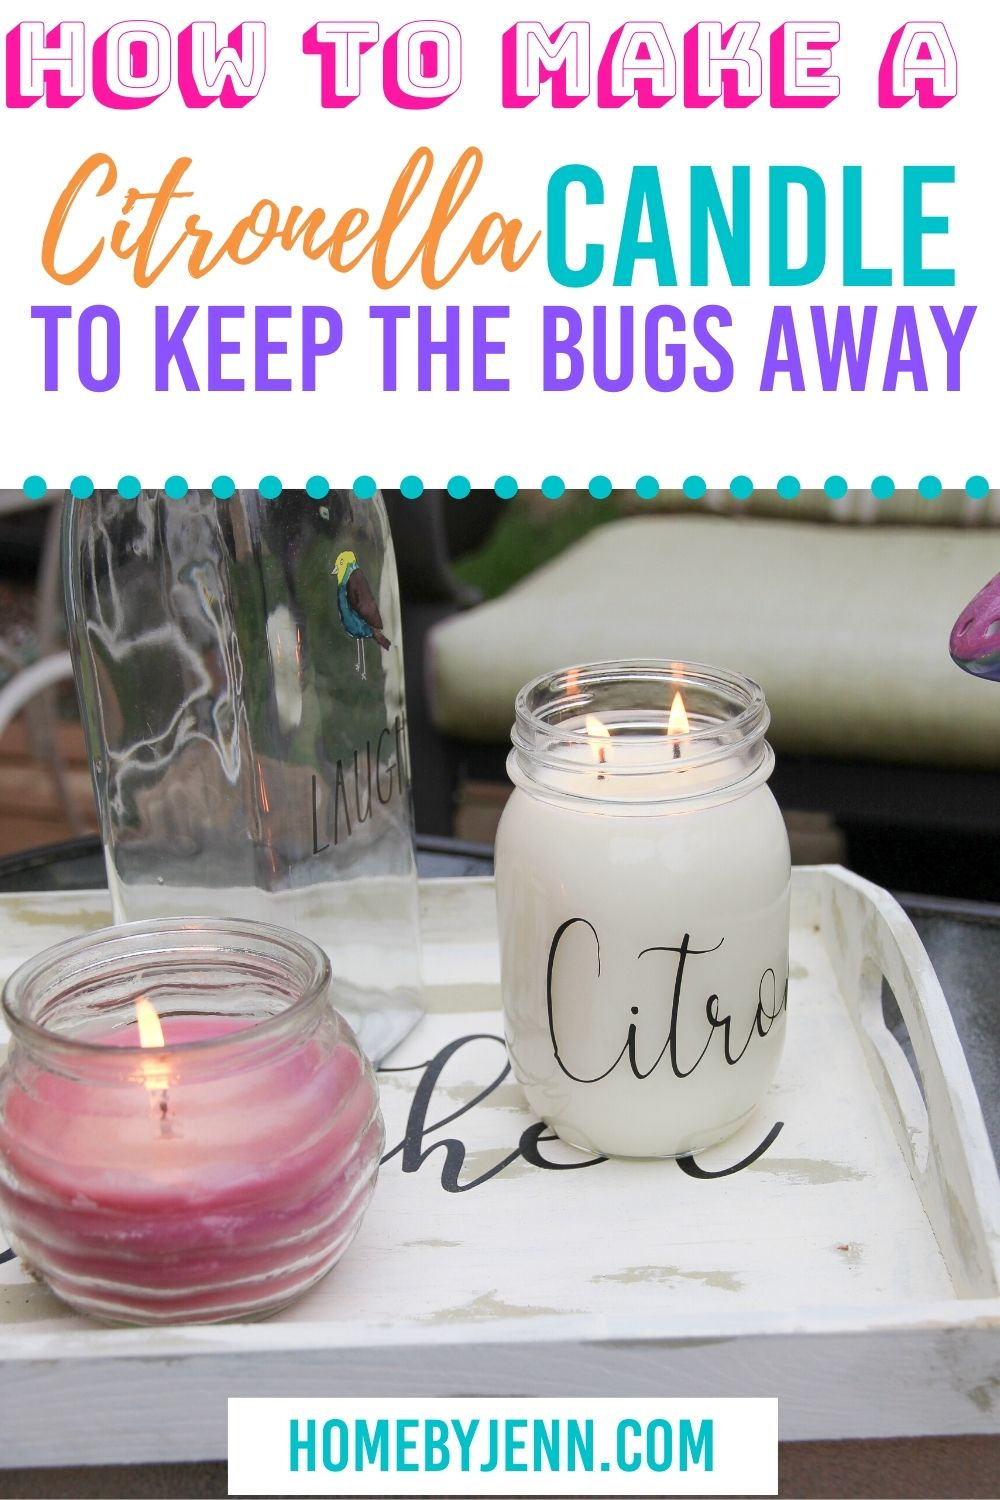 Keep the bugs away with a homemade citronella candle. Learn how simple it is to make this candle. You'll be making your own citronella candles for years to come when you learn these candle making tips and tricks. via @homebyjenn